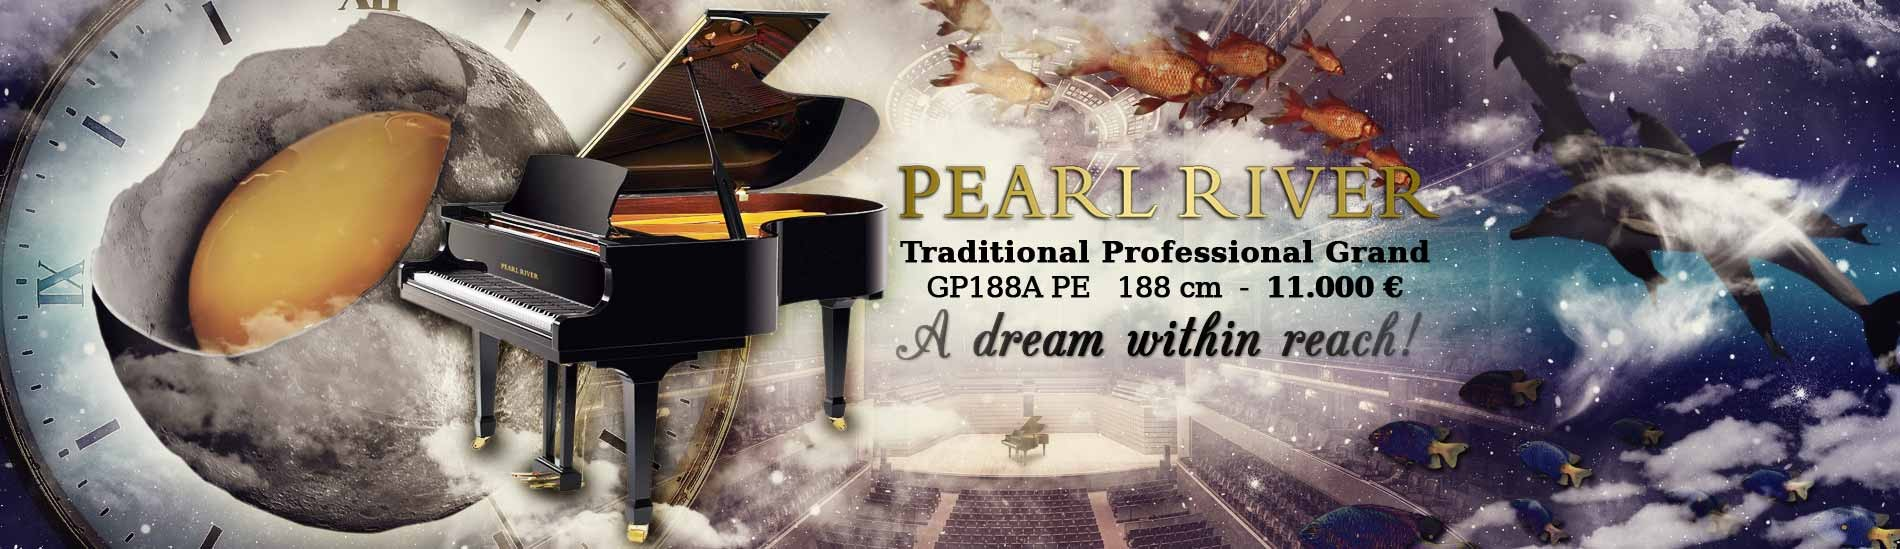 Pearl River Grand Piano GP188A PE Traditional Professional 188 cm